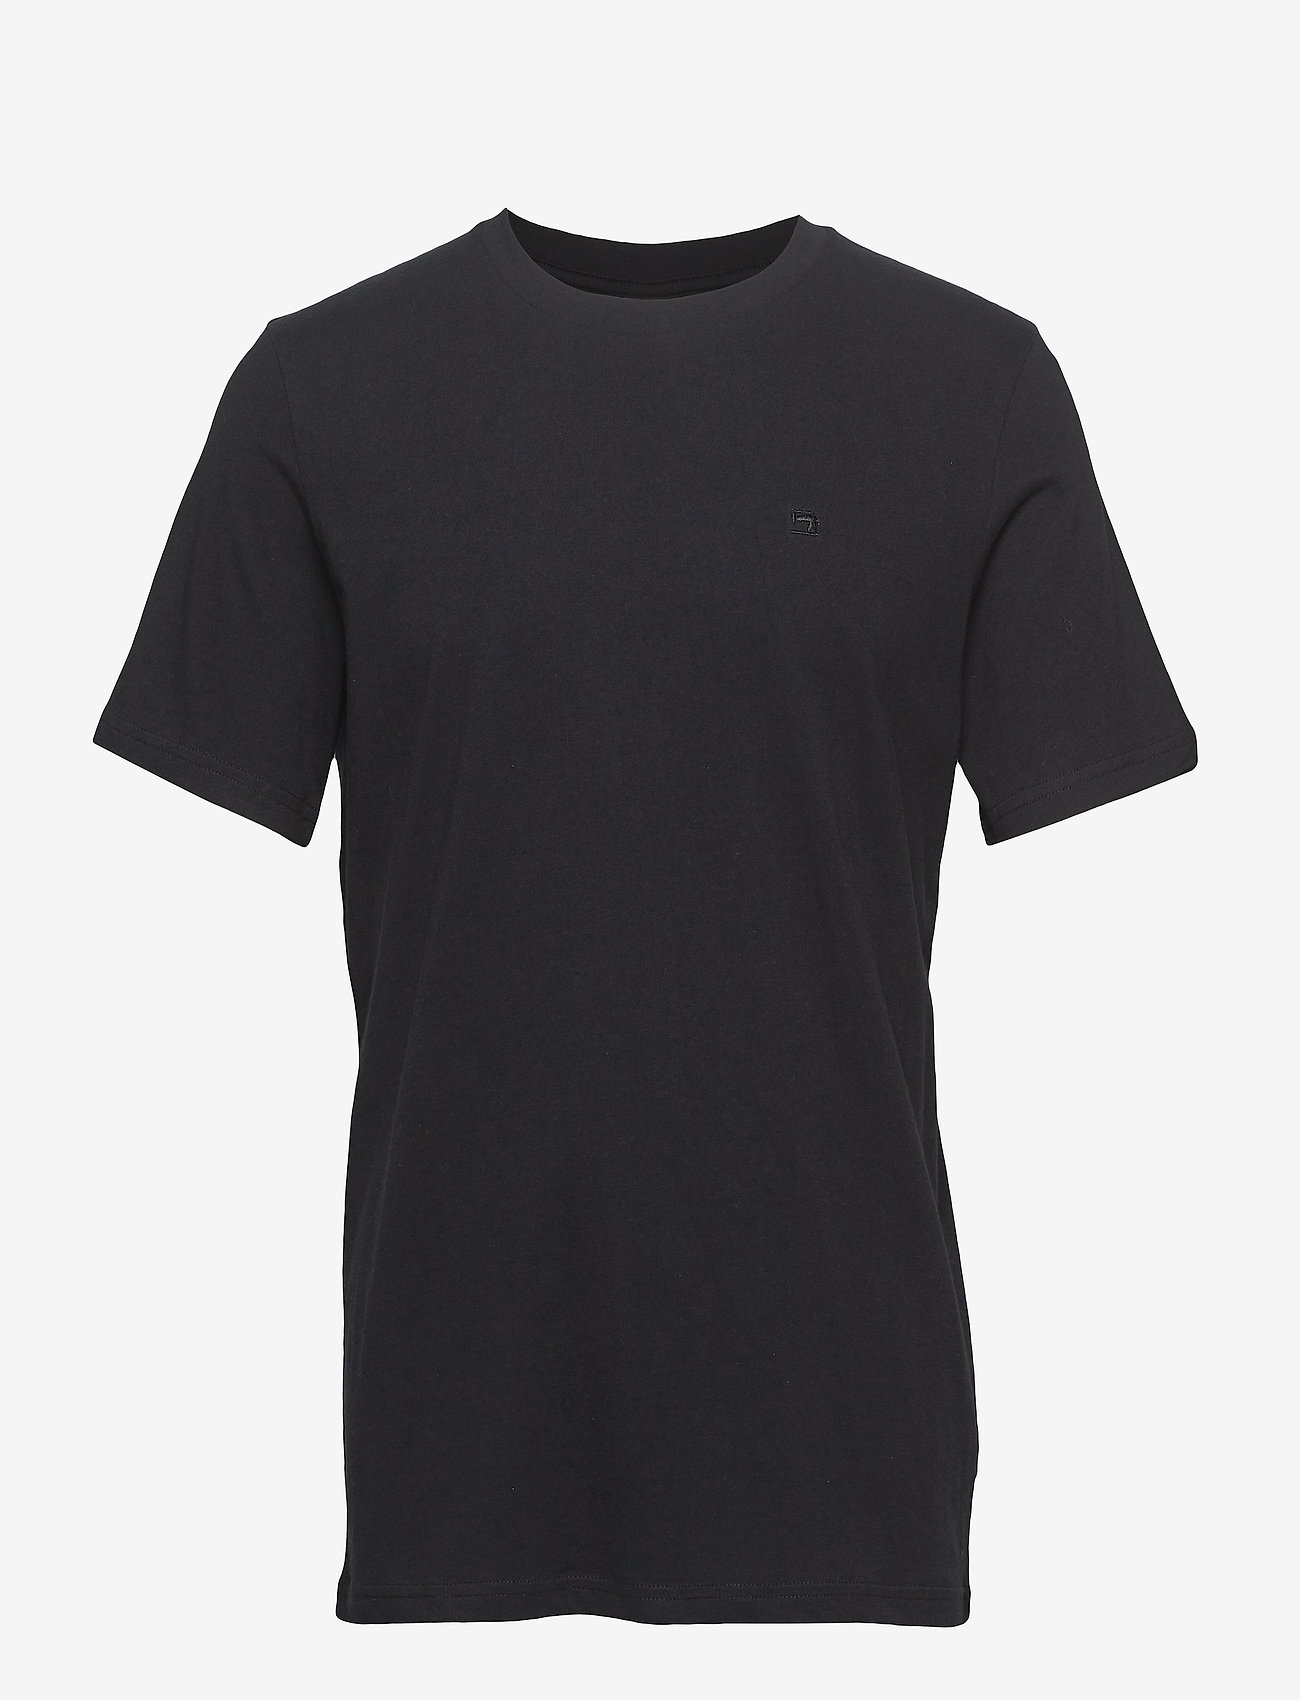 Scotch & Soda - Cotton tee with wider neck rib - t-shirts basiques - black - 0